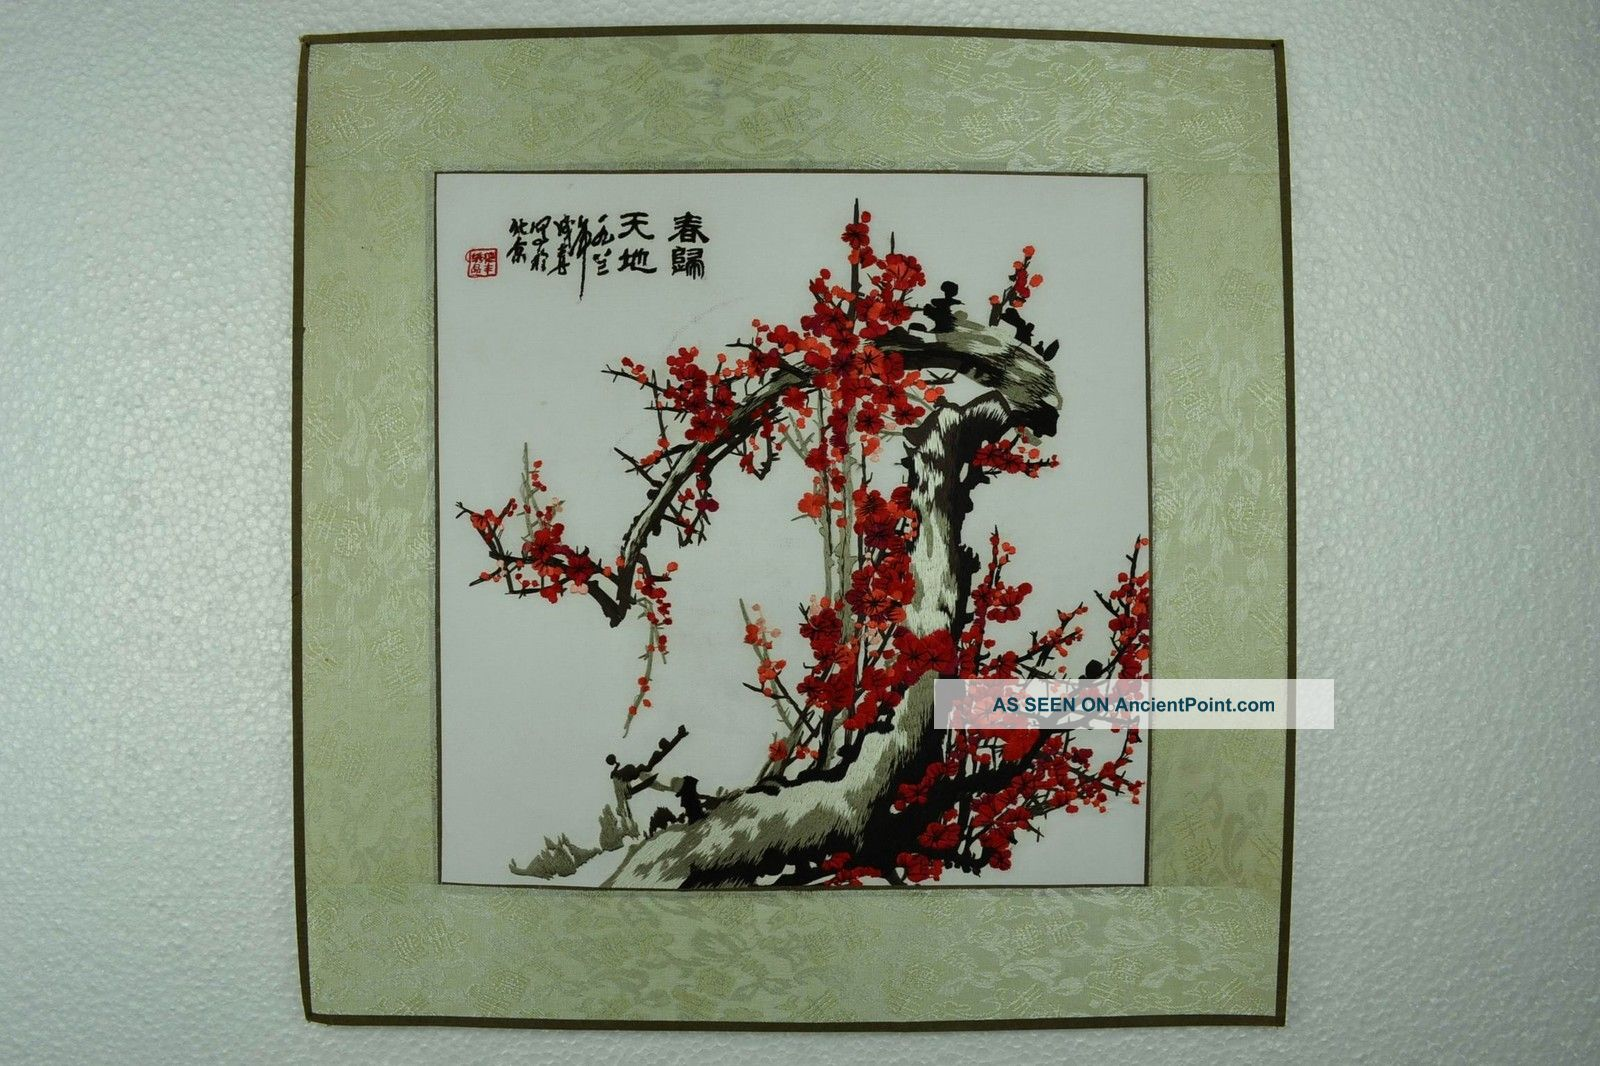 Asian Rare Old Collectibles Decorated Handwork Cloth Plum Blossom Embroidery Embroidery photo